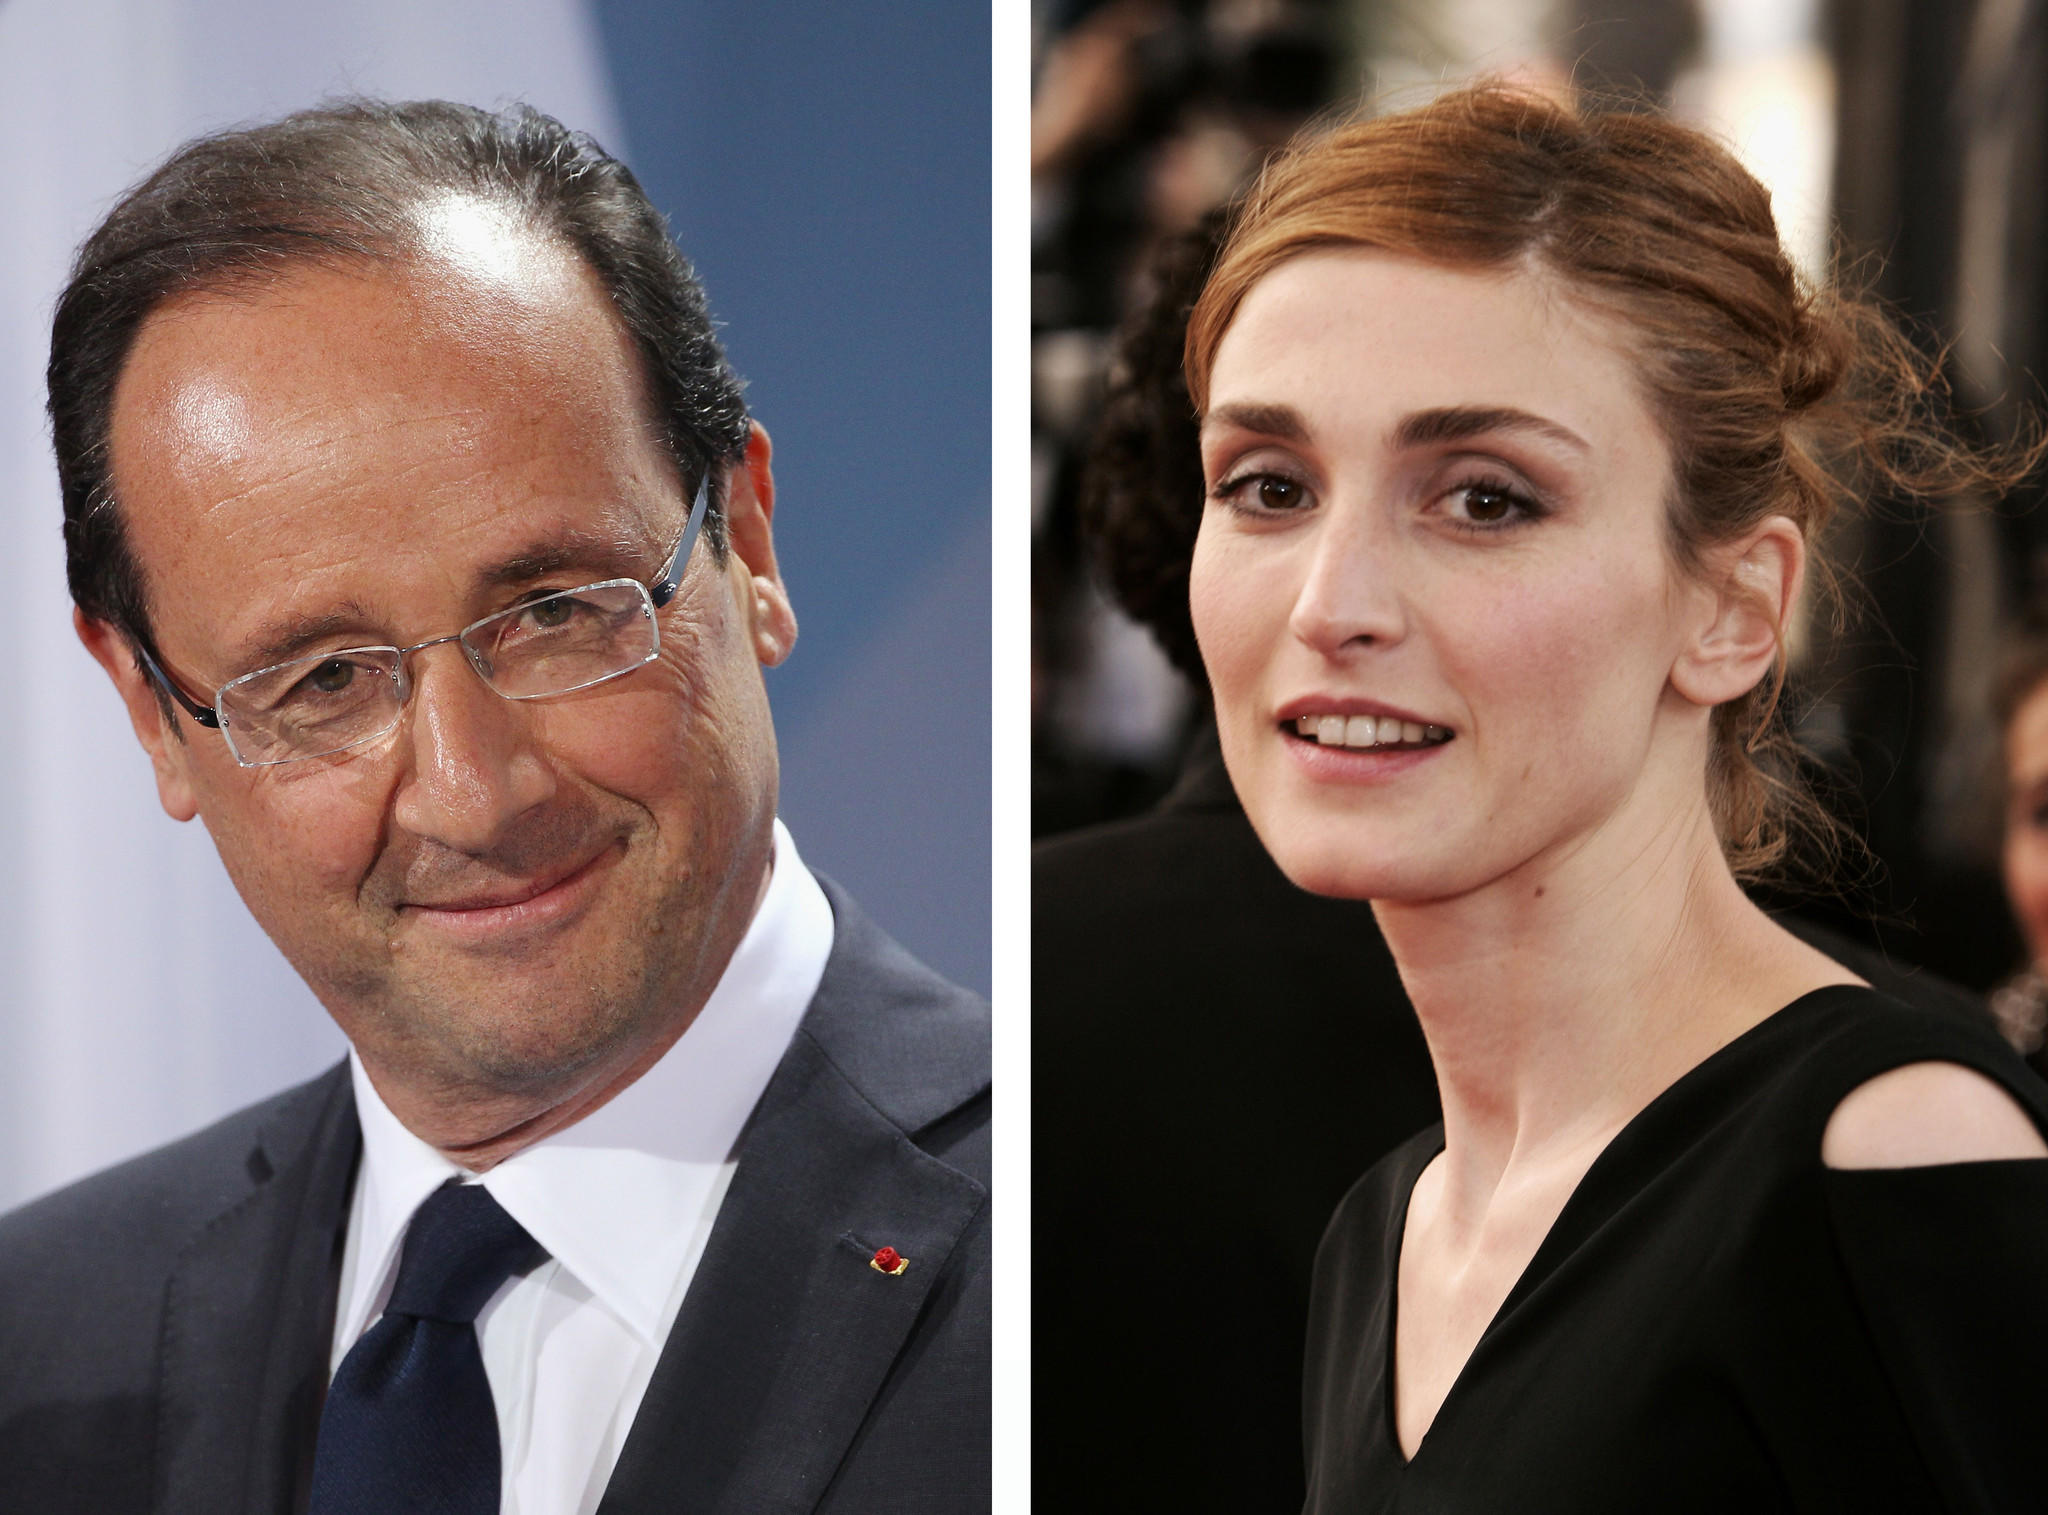 A composite image shows president of France Francois Hollande (L) and actress Julie Gayet.